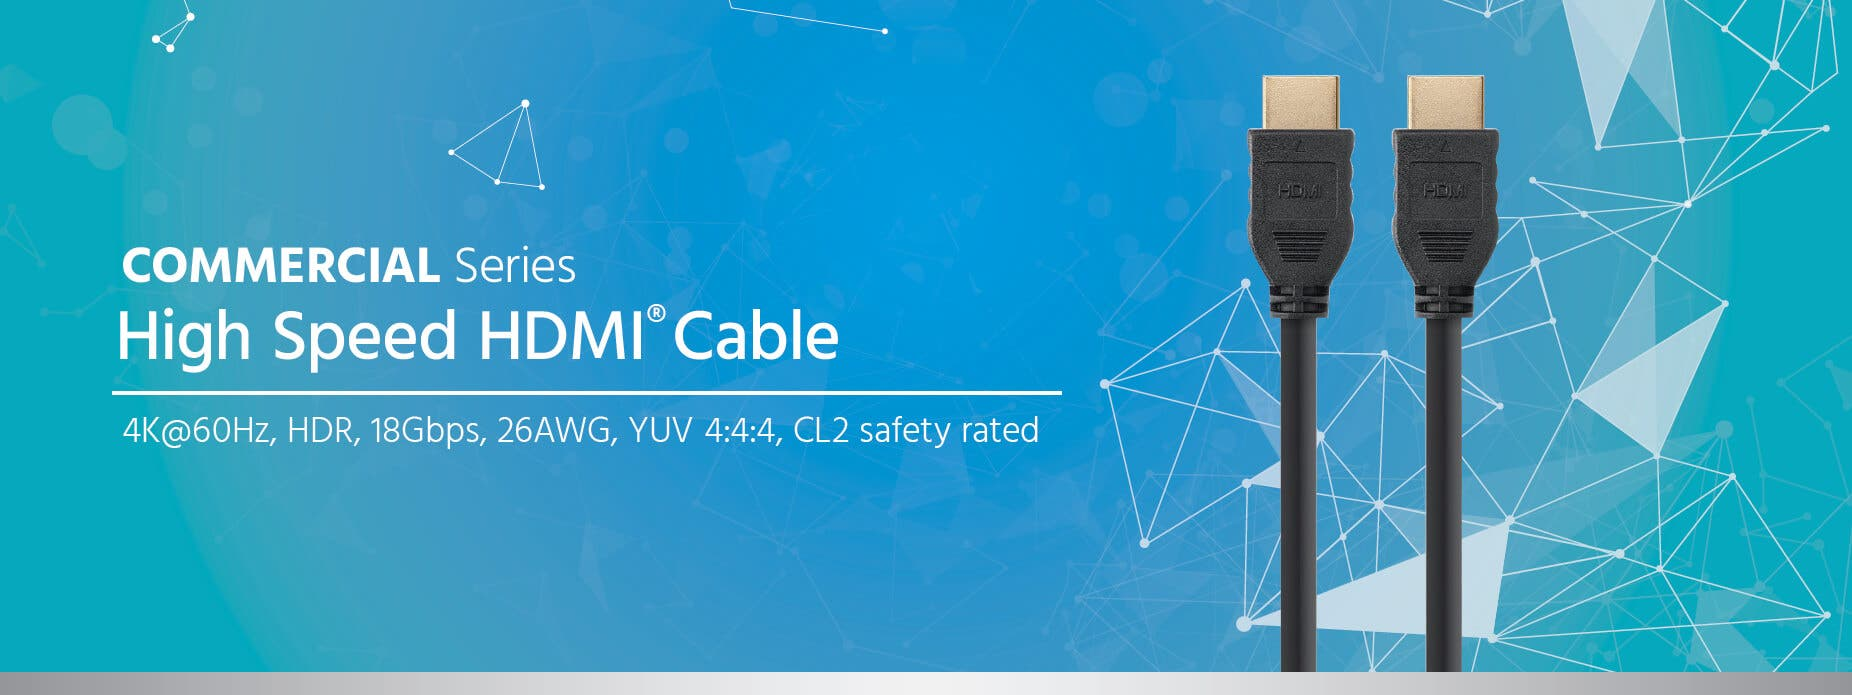 Monoprice Commercial Series High Speed HDMI Cable - 4K @ 60Hz, HDR ...